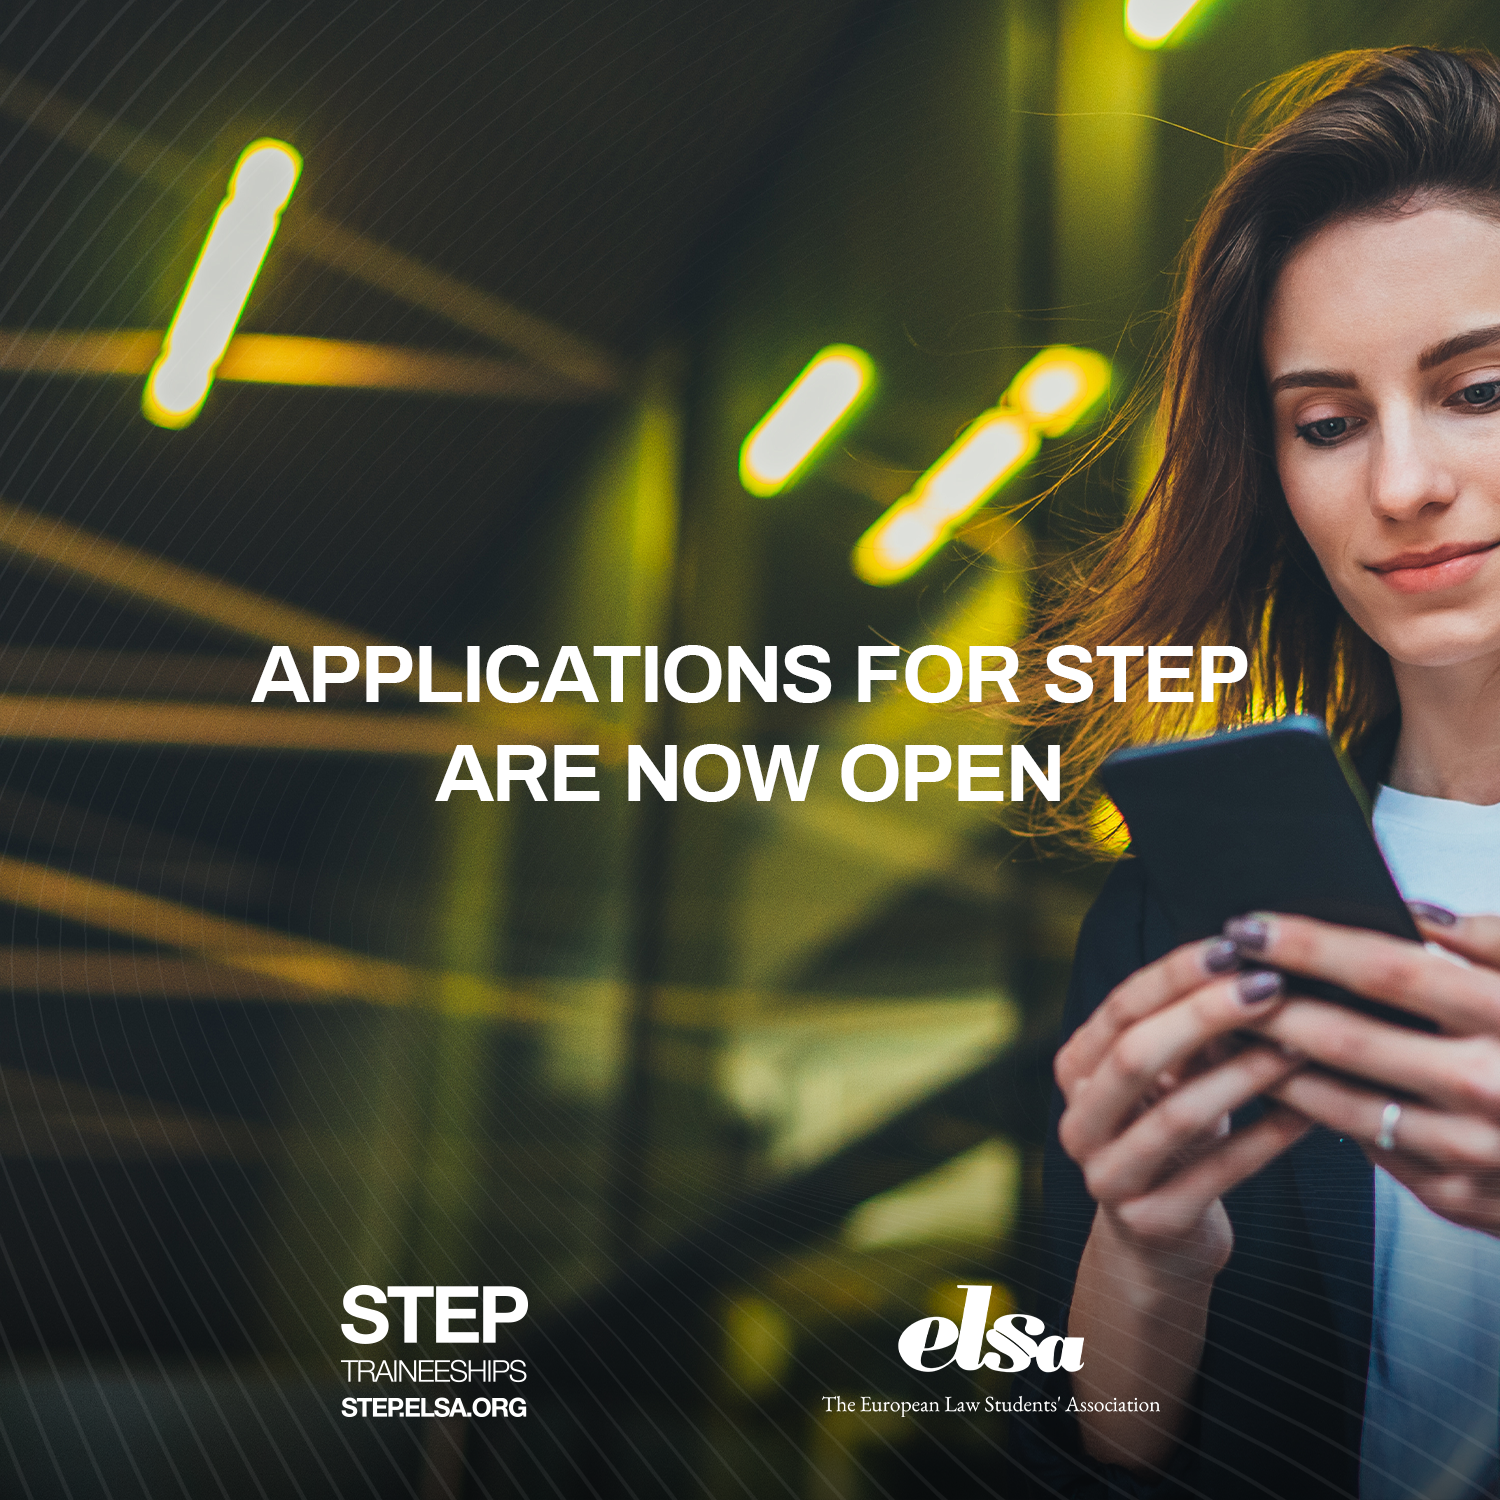 Applications for STEP